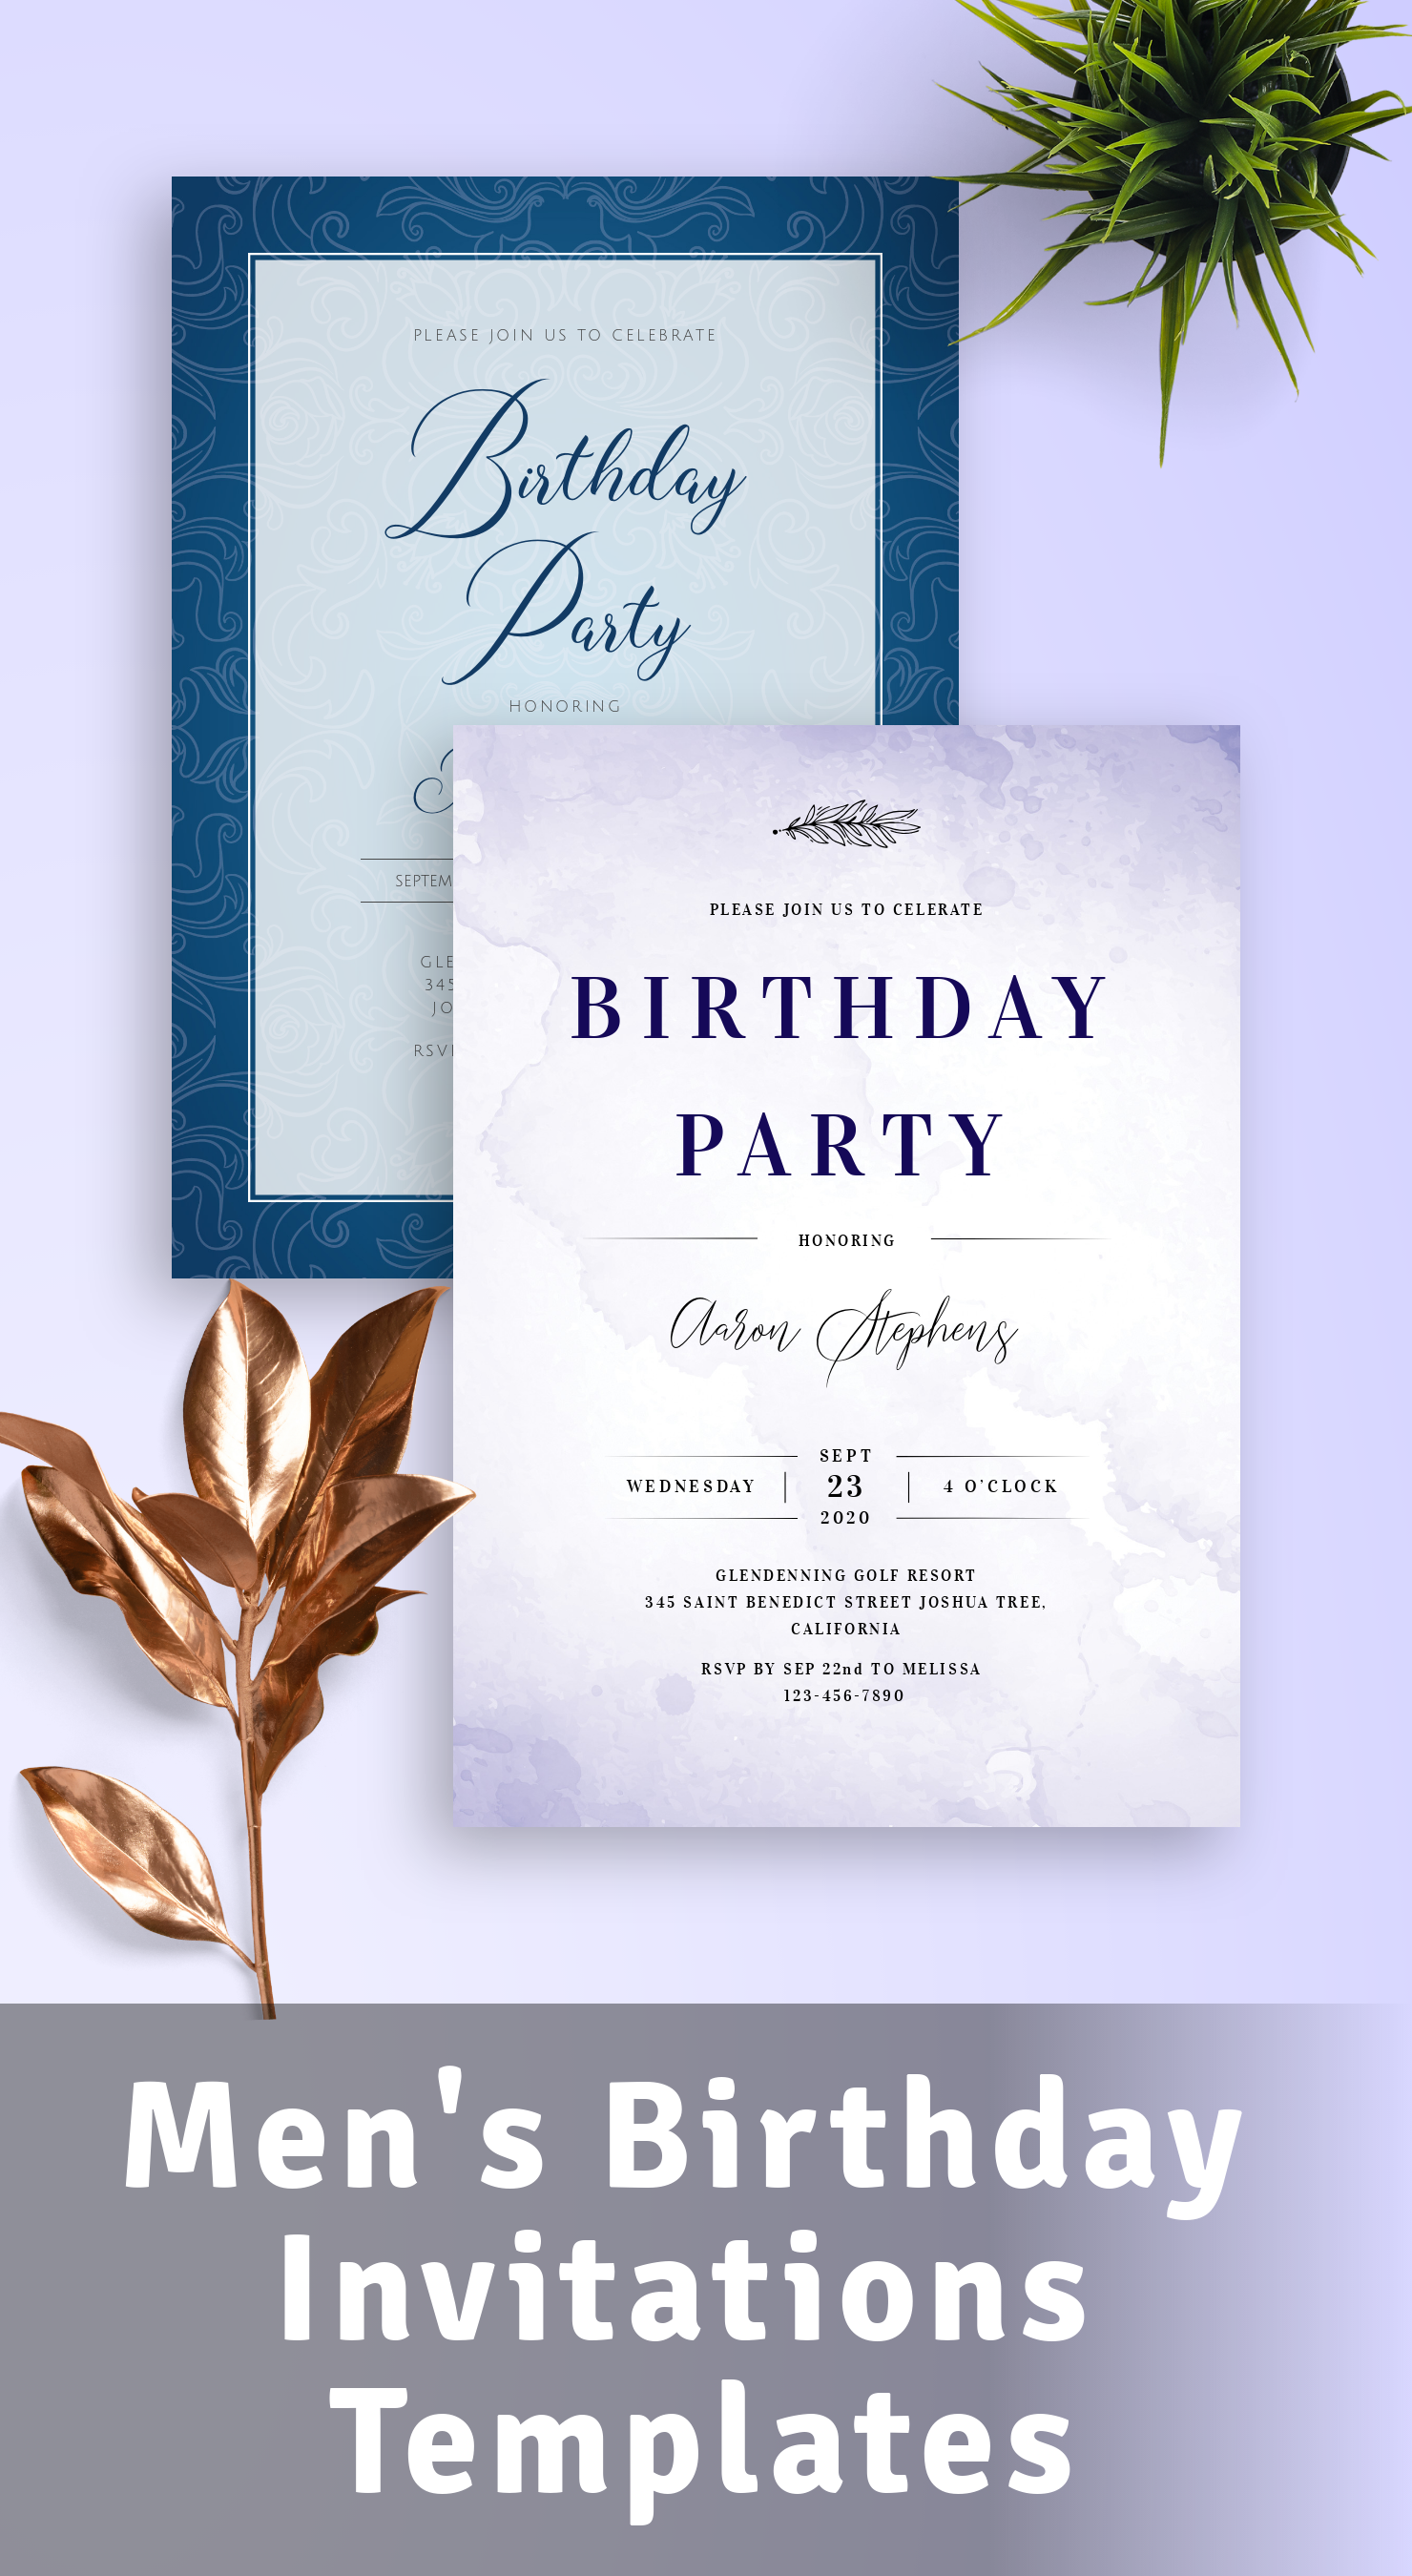 Download Men's Birthday Invitations